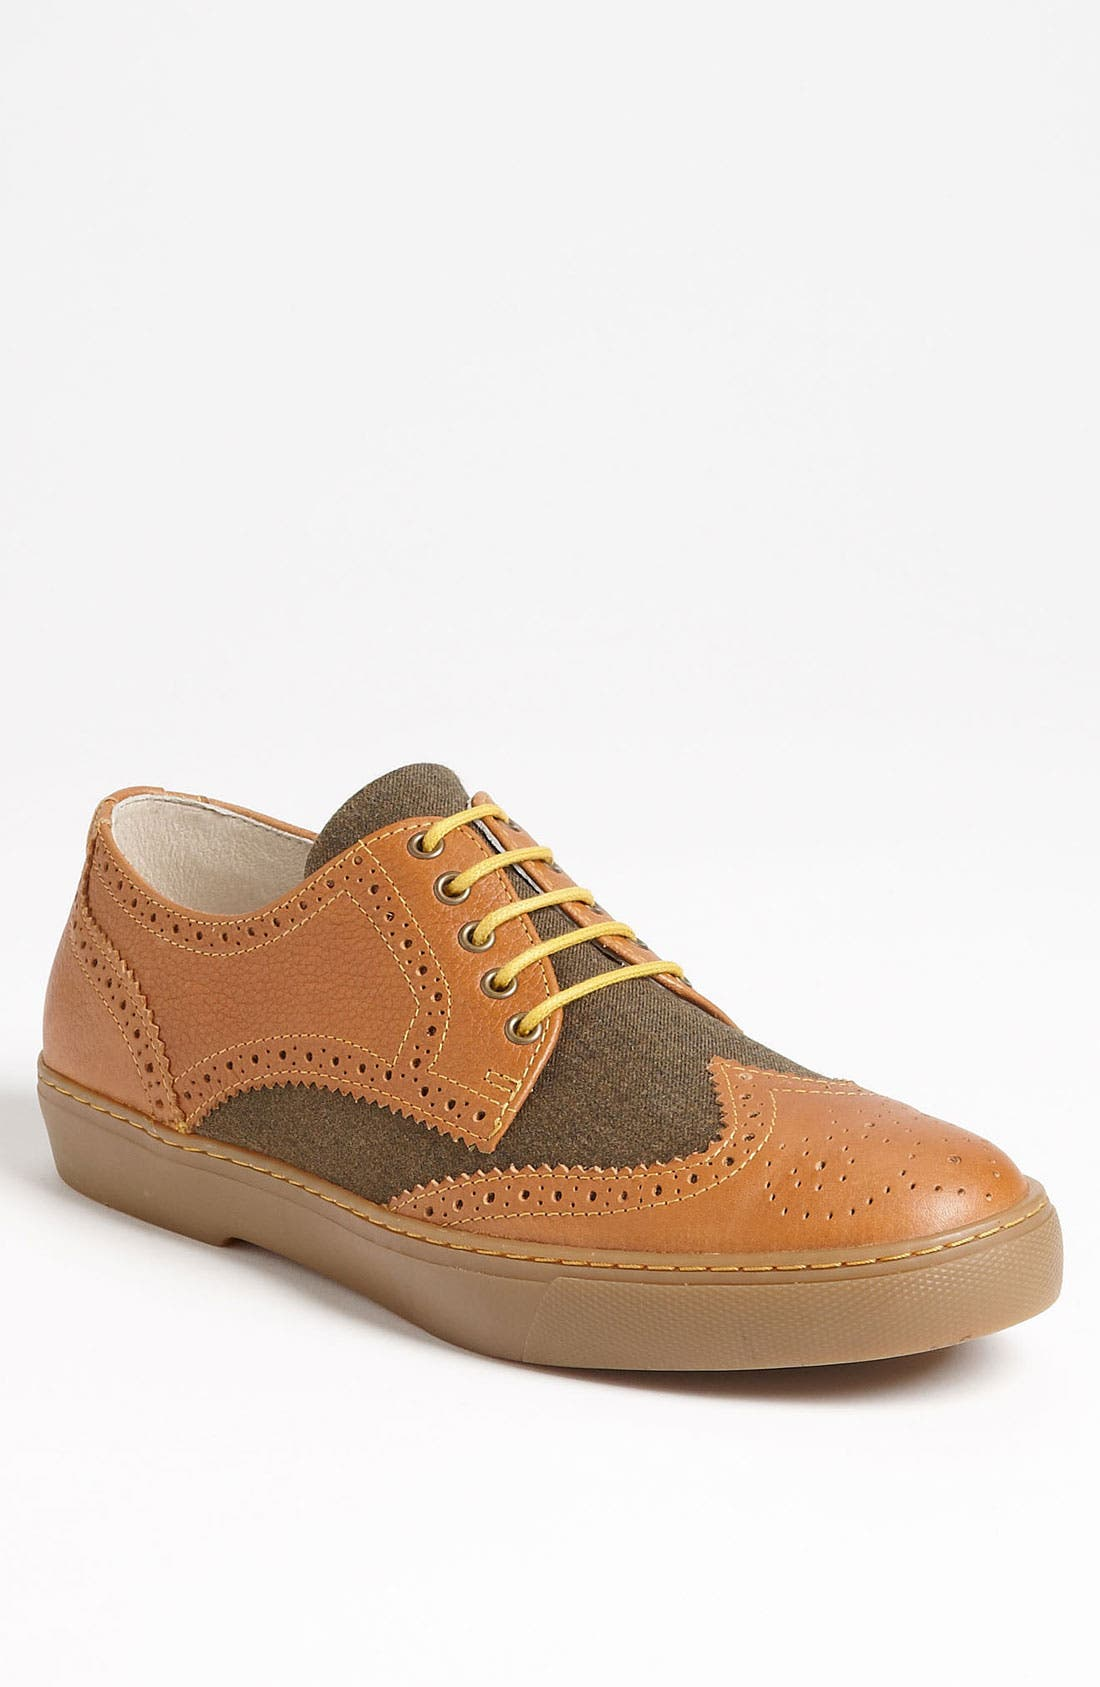 Alternate Image 1 Selected - Fred Perry 'Donegan' Wingtip